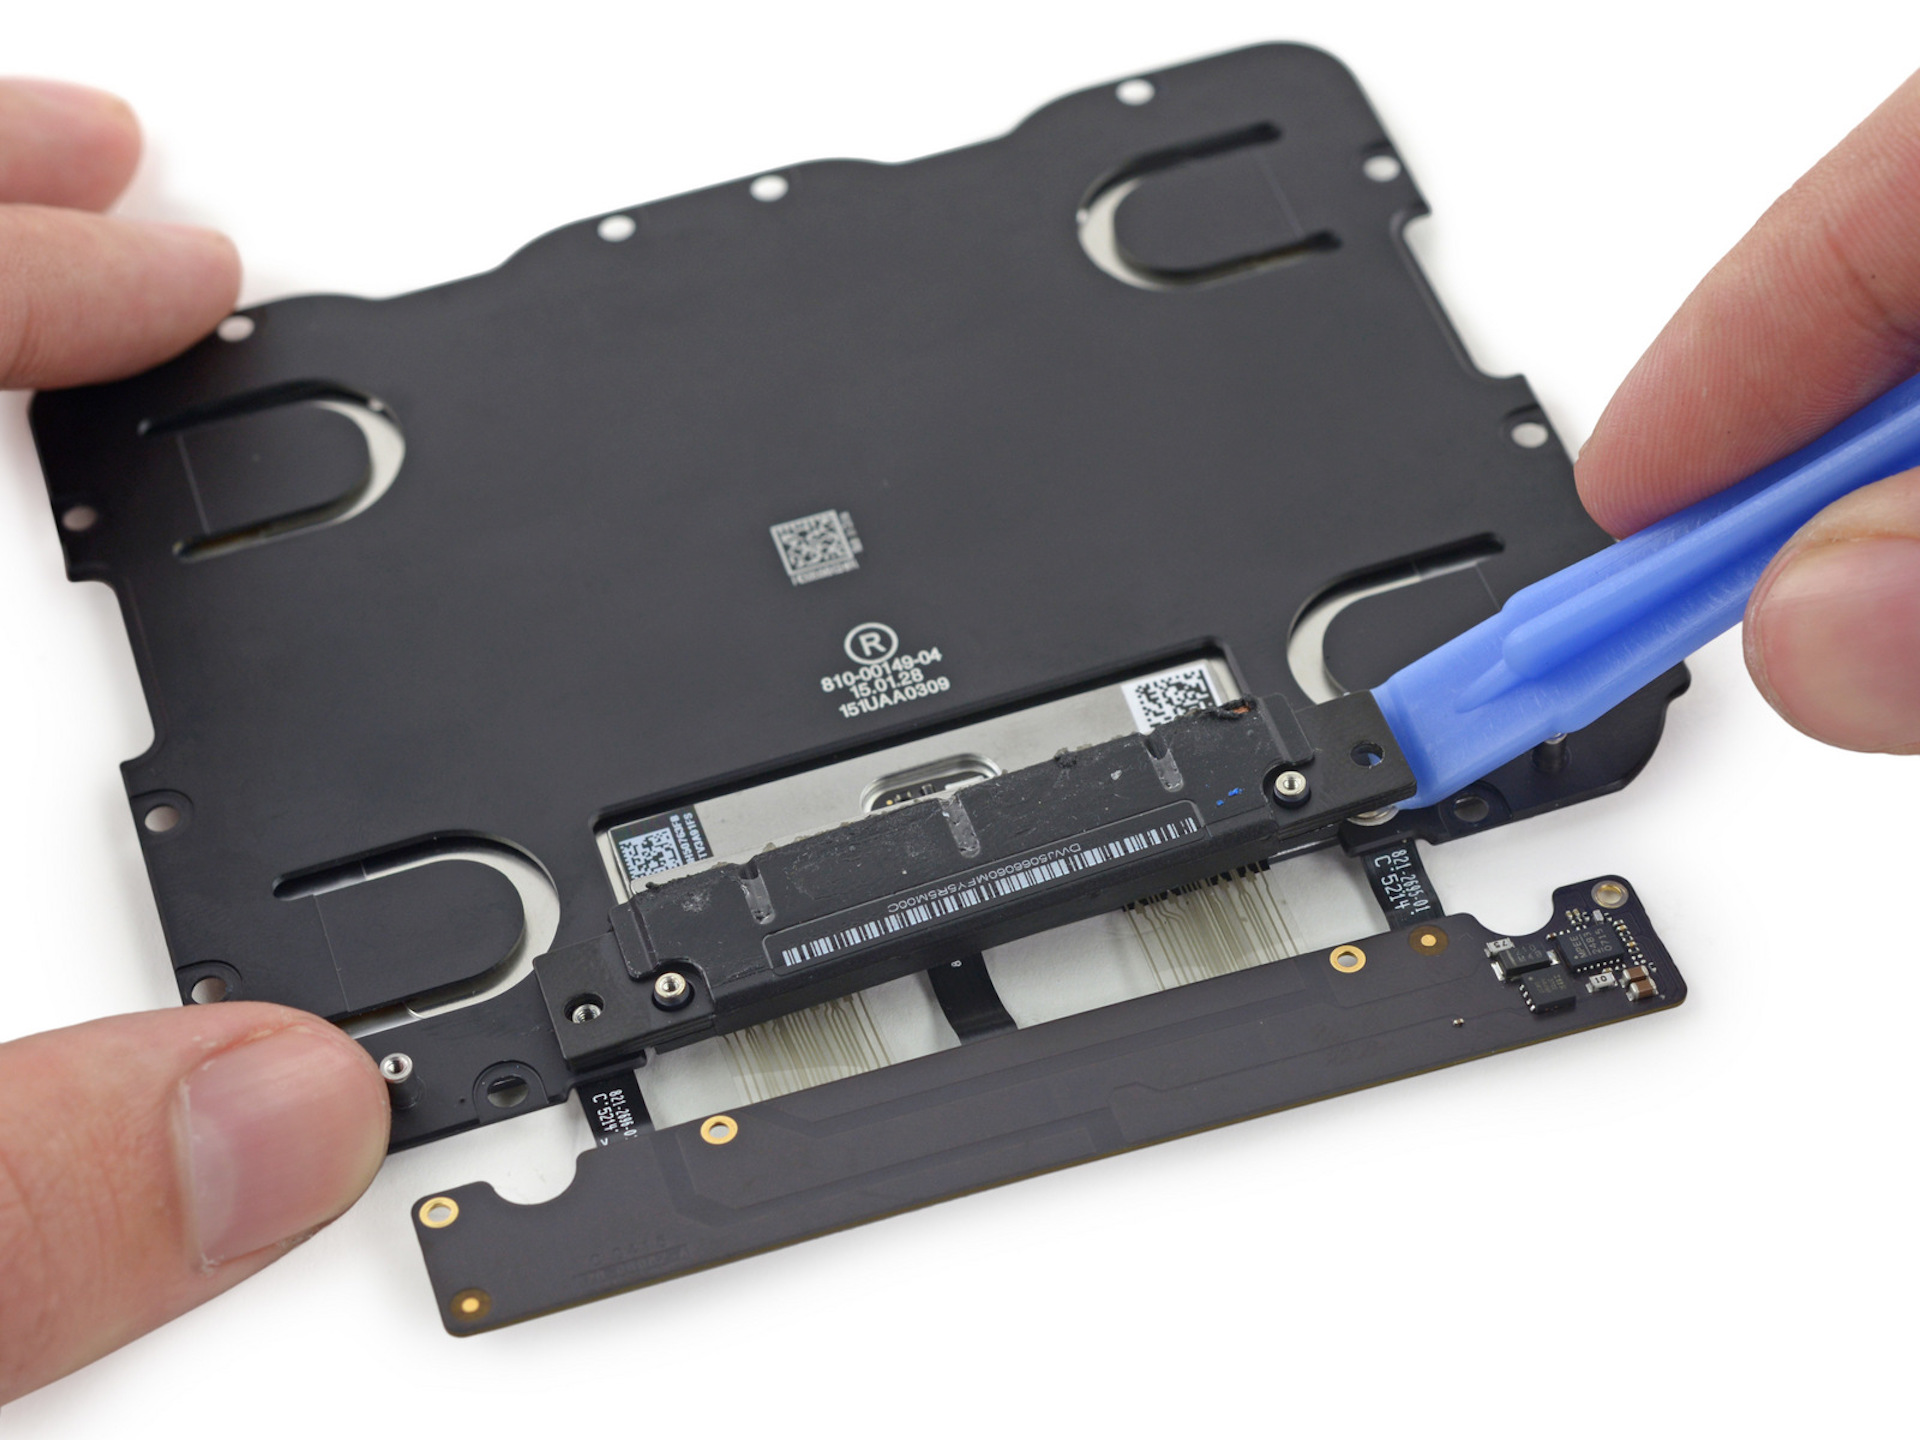 The underside of the new Force Touch trackpad.